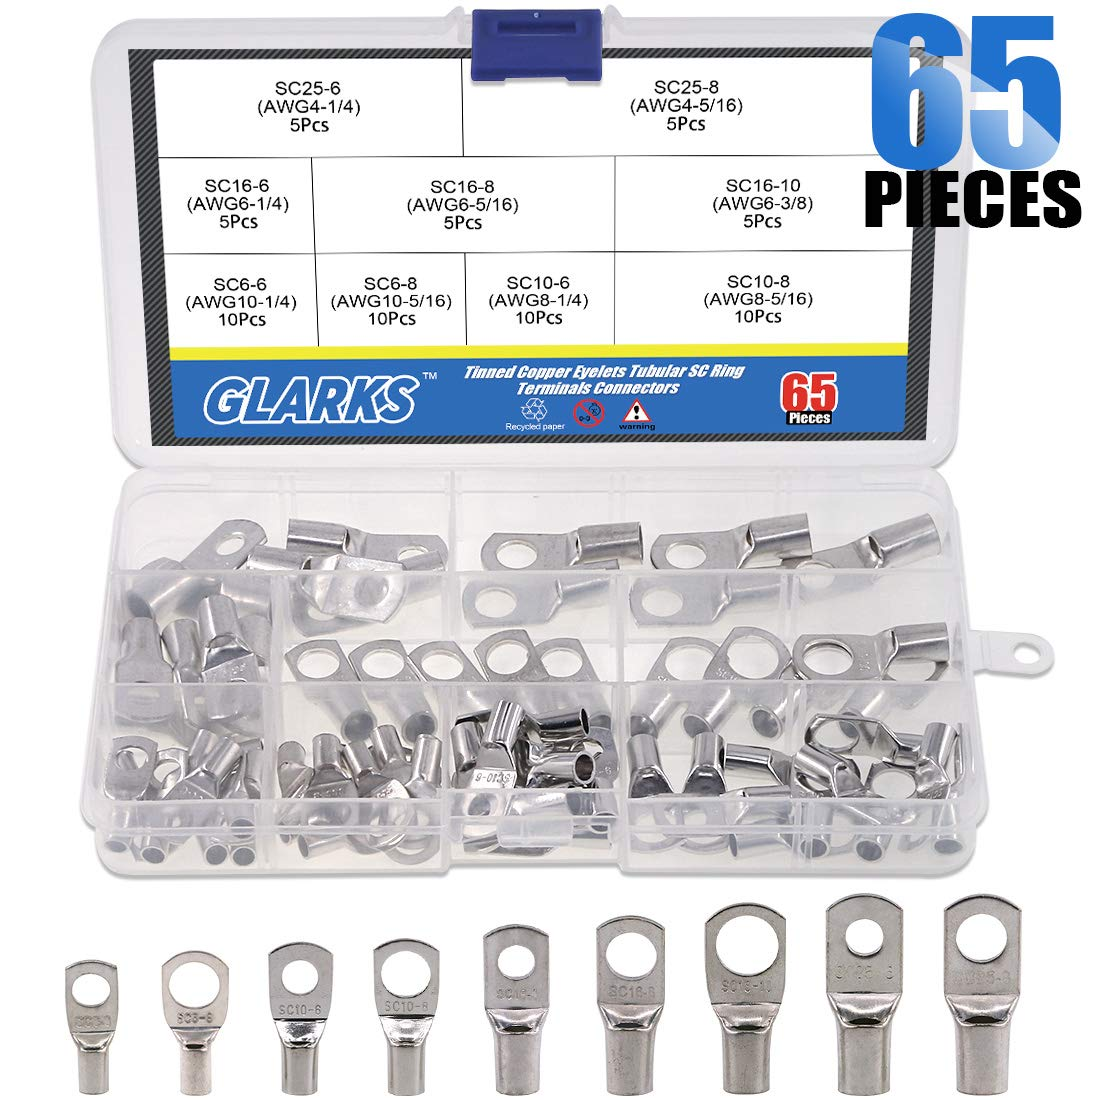 Glarks 65Pcs Assorted Heavy Duty Wire Lugs Battery Cable Tinned Copper Eyelets Tubular SC Ring Terminals Connectors with Spy Hole Assortment Kit by Glarks